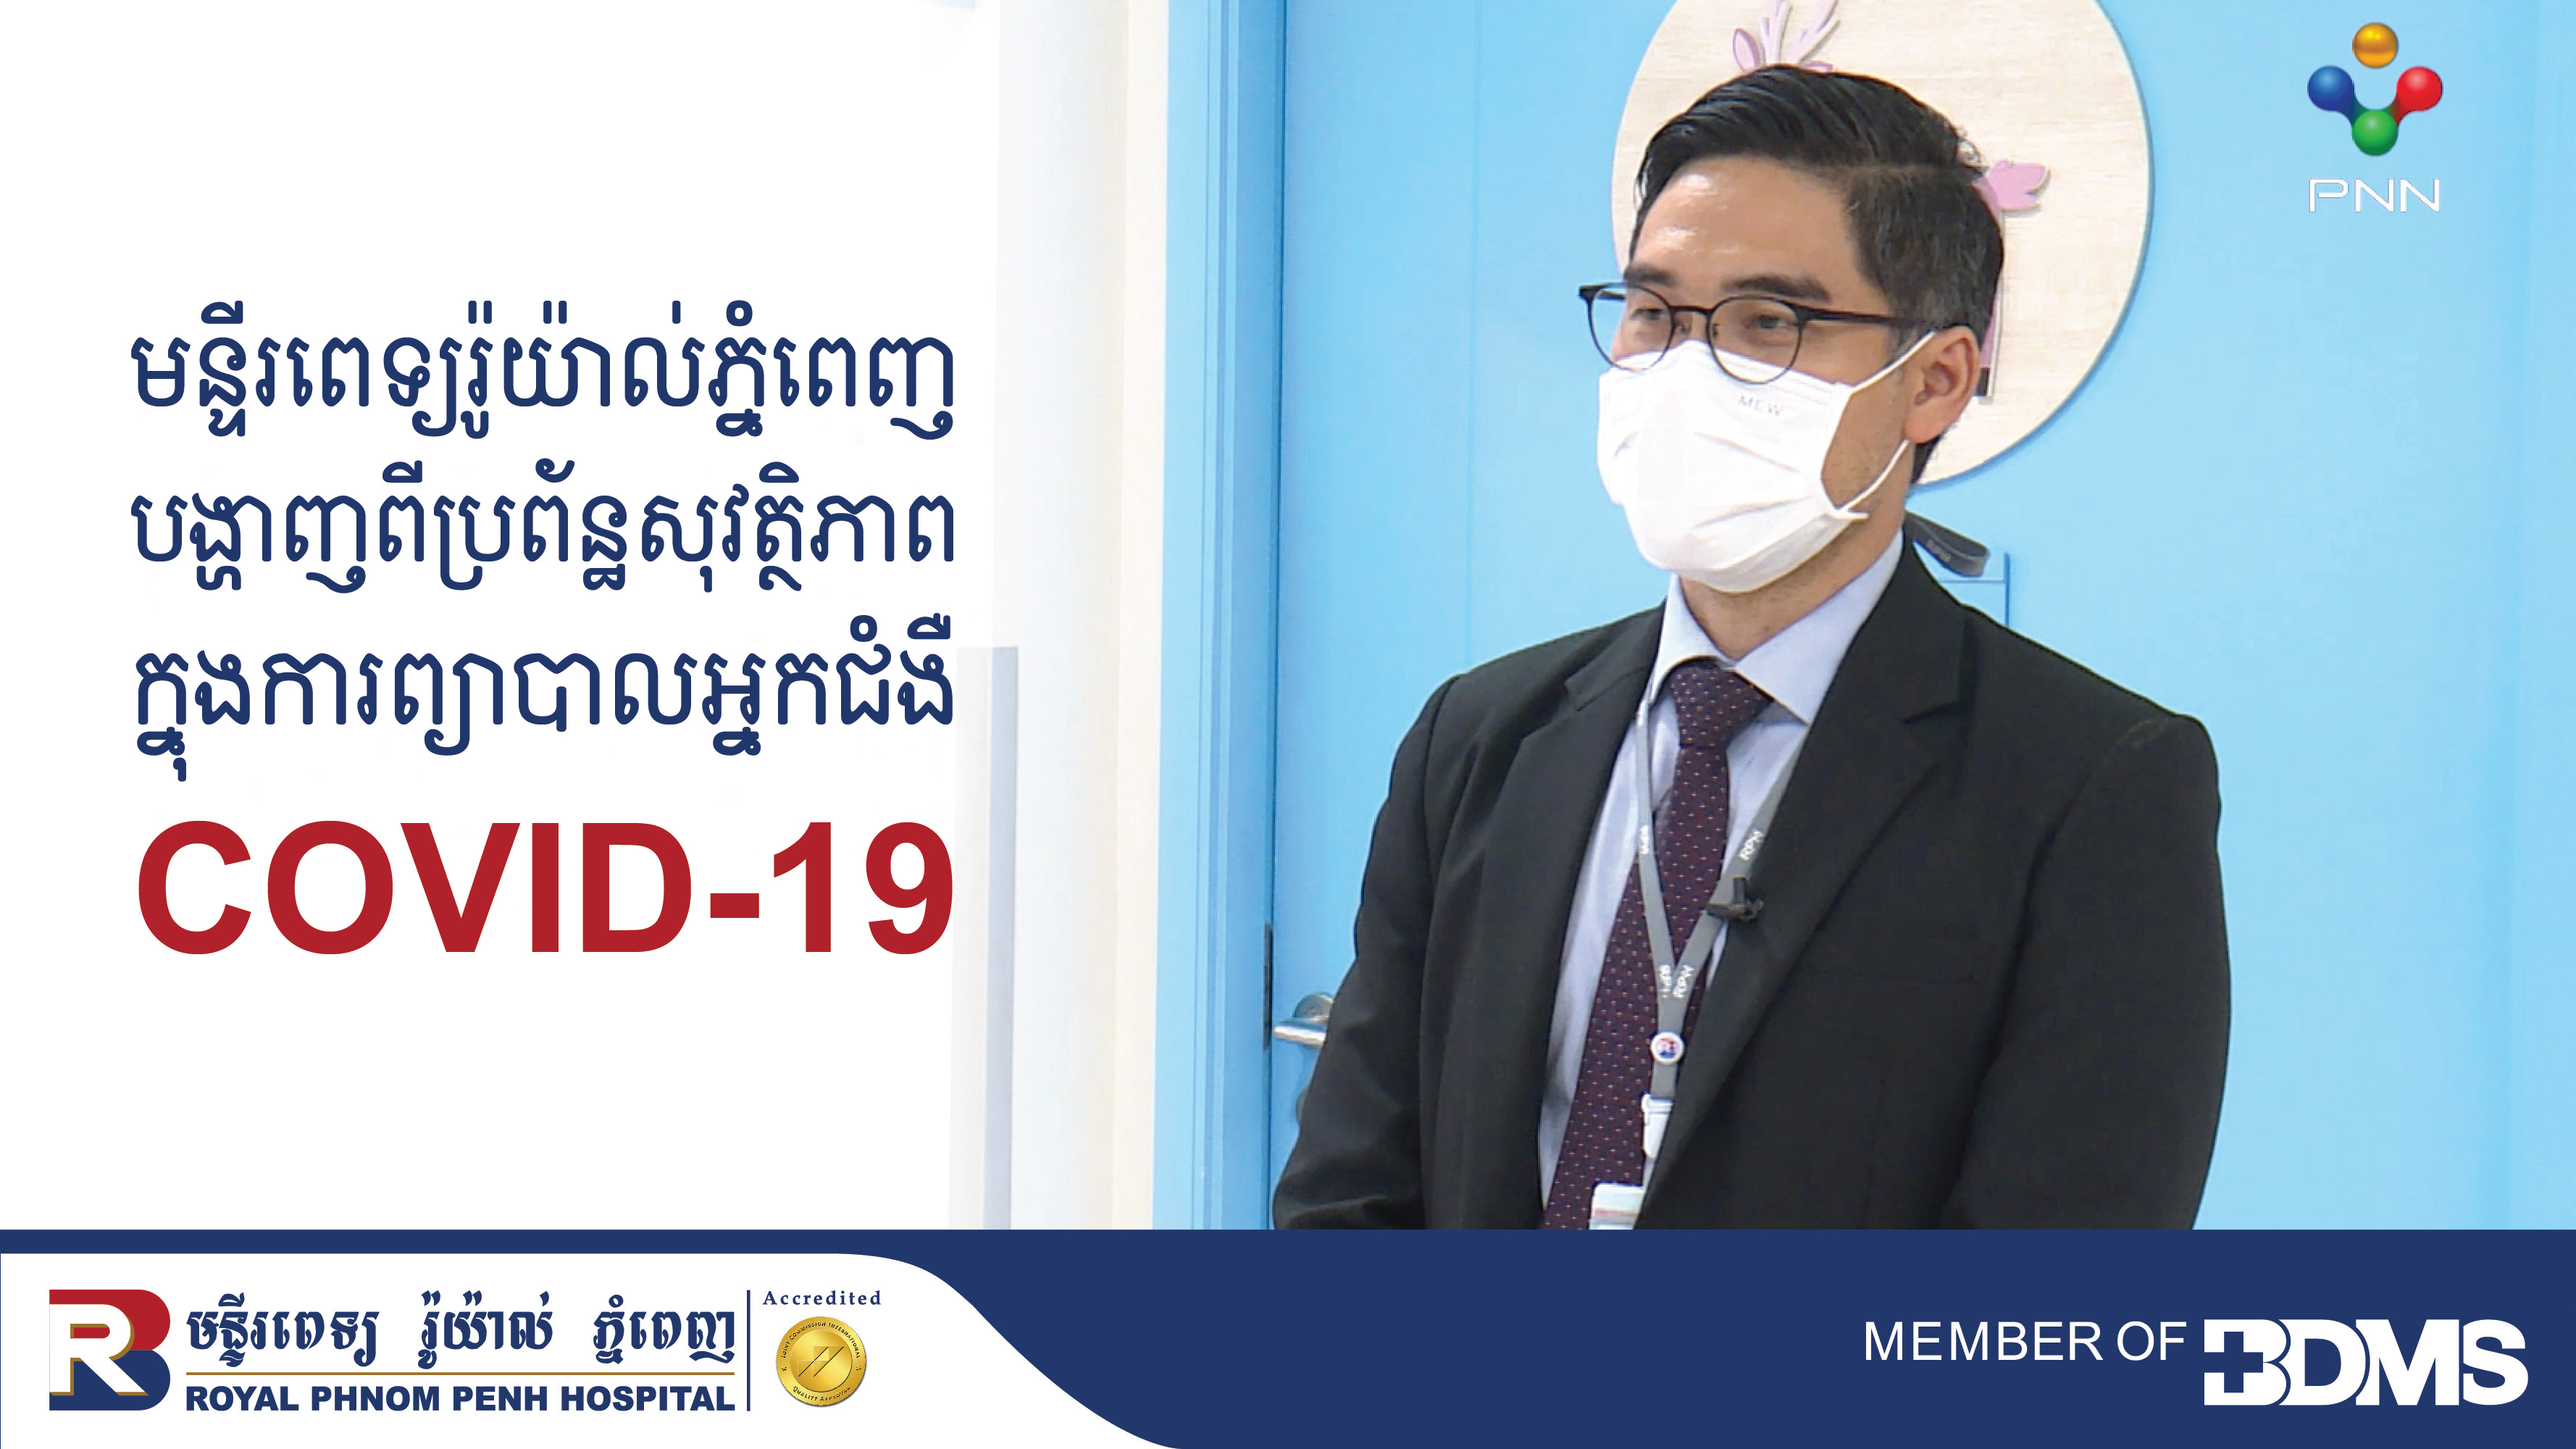 Safety systems in Royal Phnom Penh Hospital by PNN TV